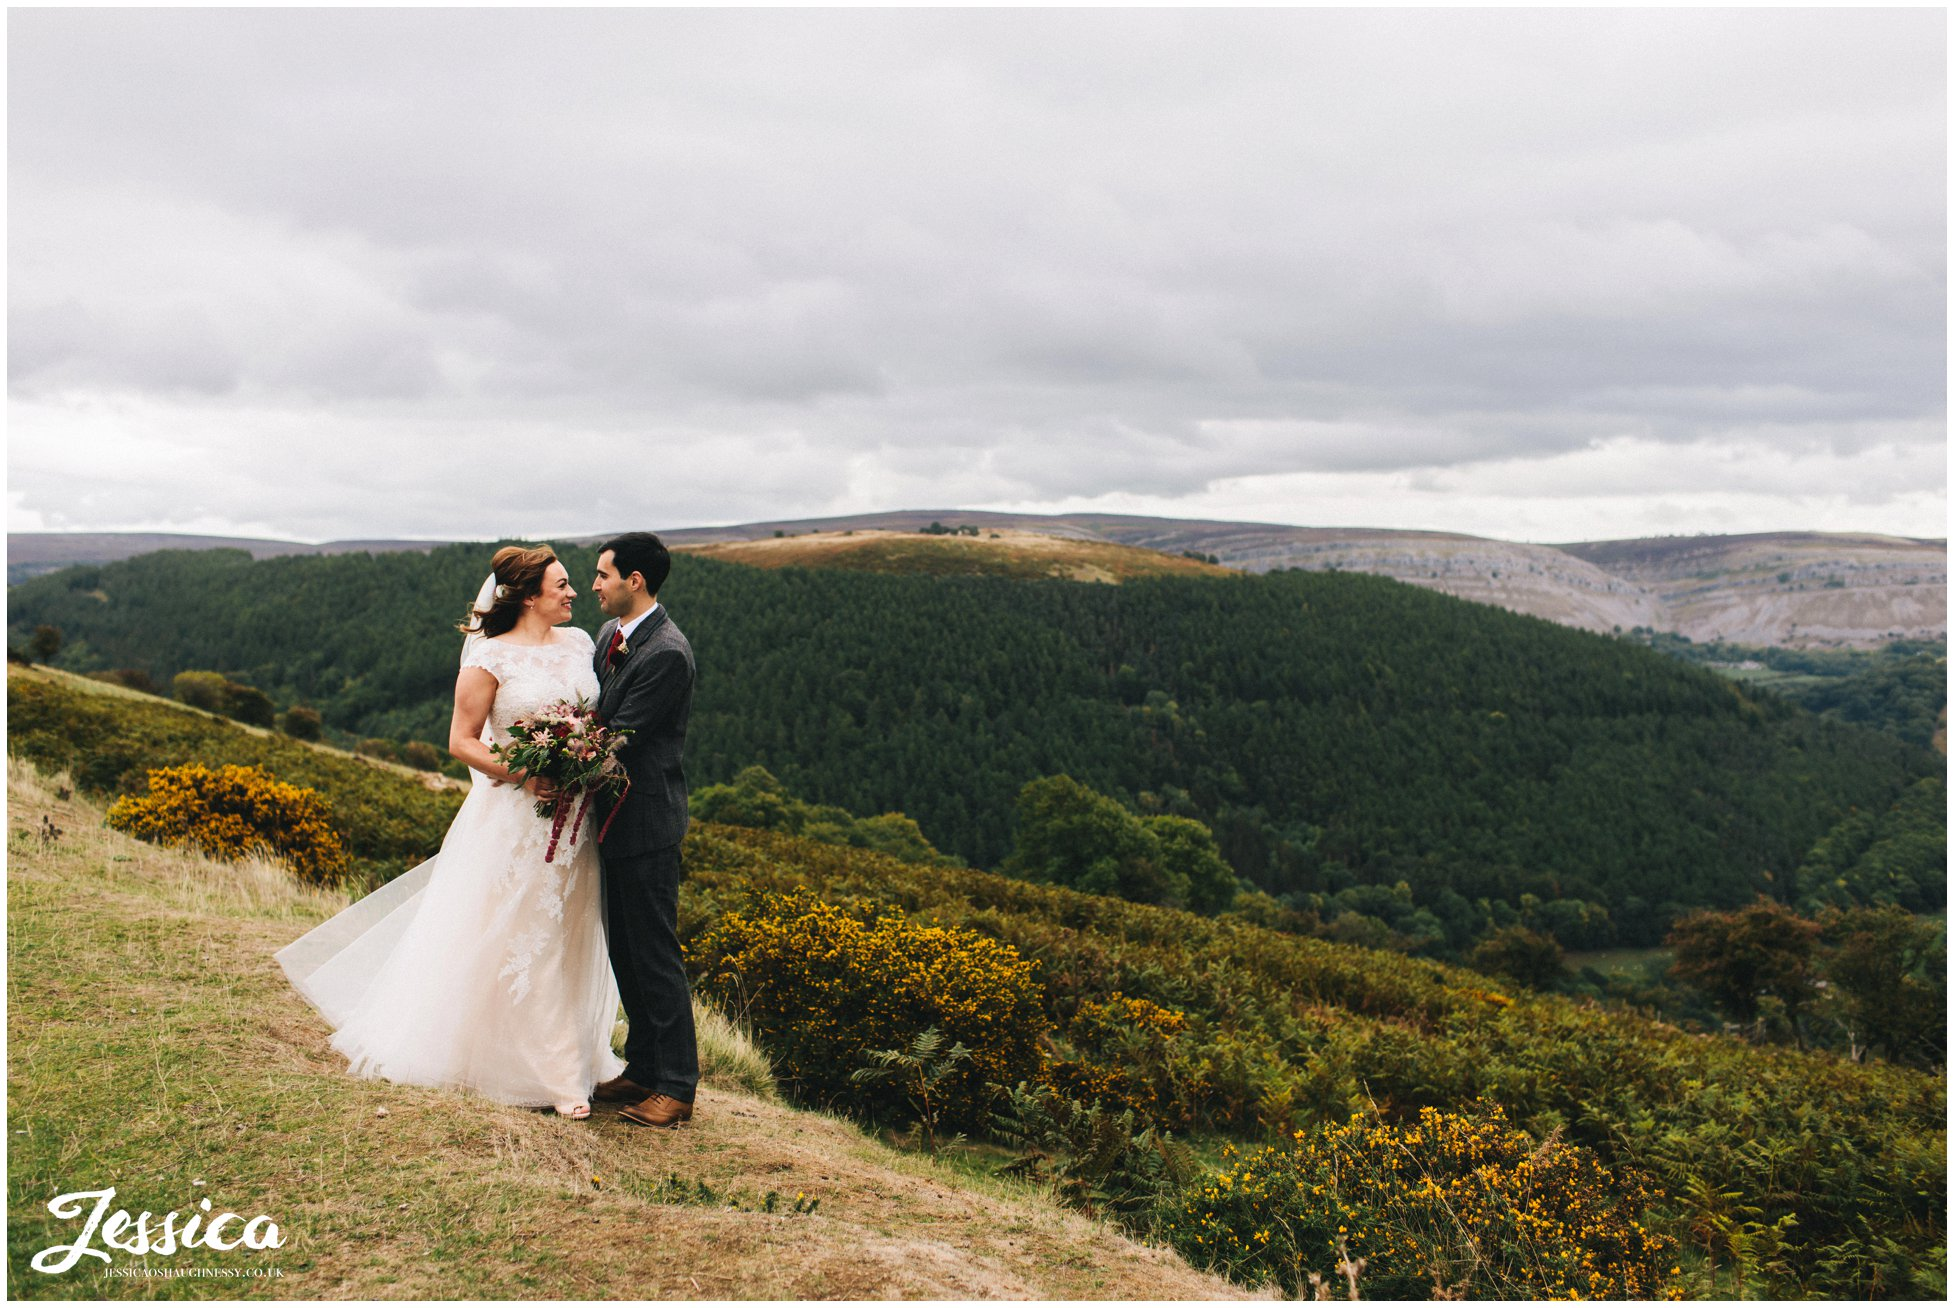 the newly wed's hold each other at the top of the welsh valleys